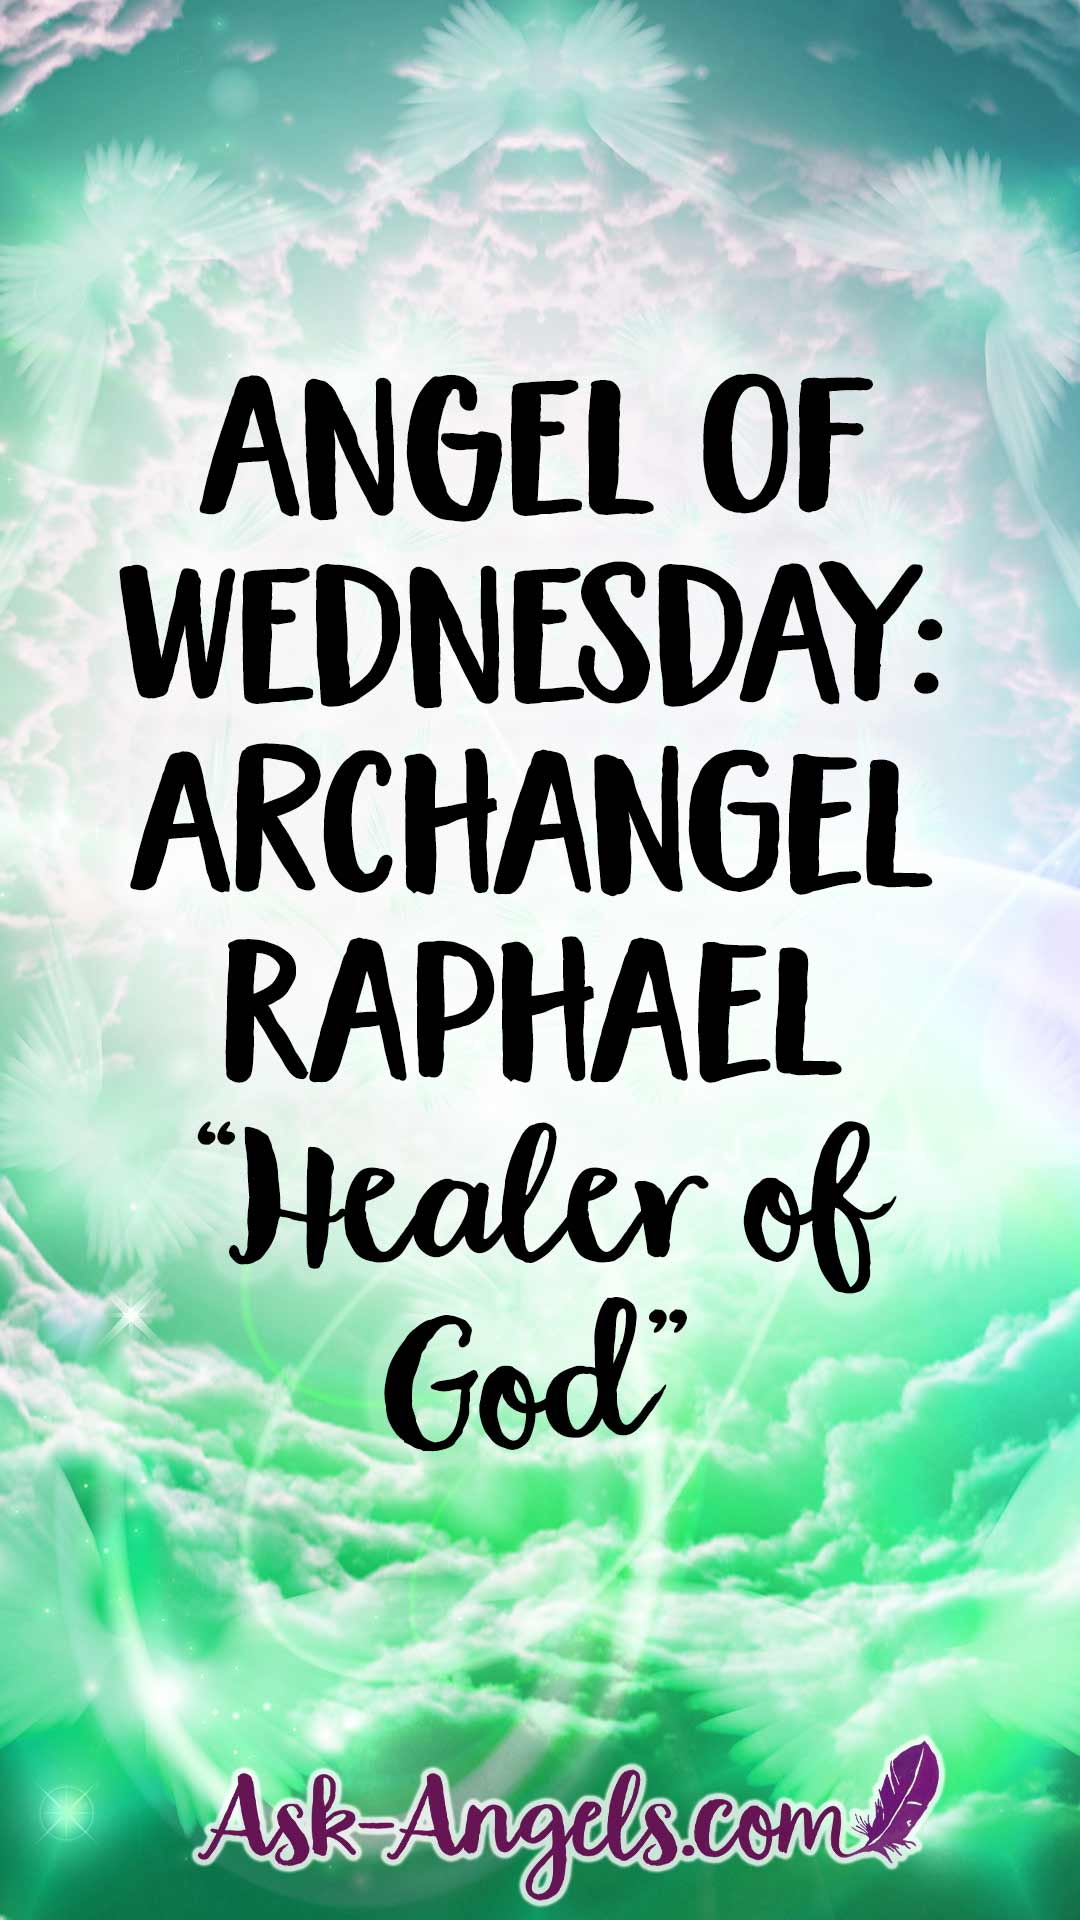 Angel of Wednesday - Archangel Raphael - Healer of God